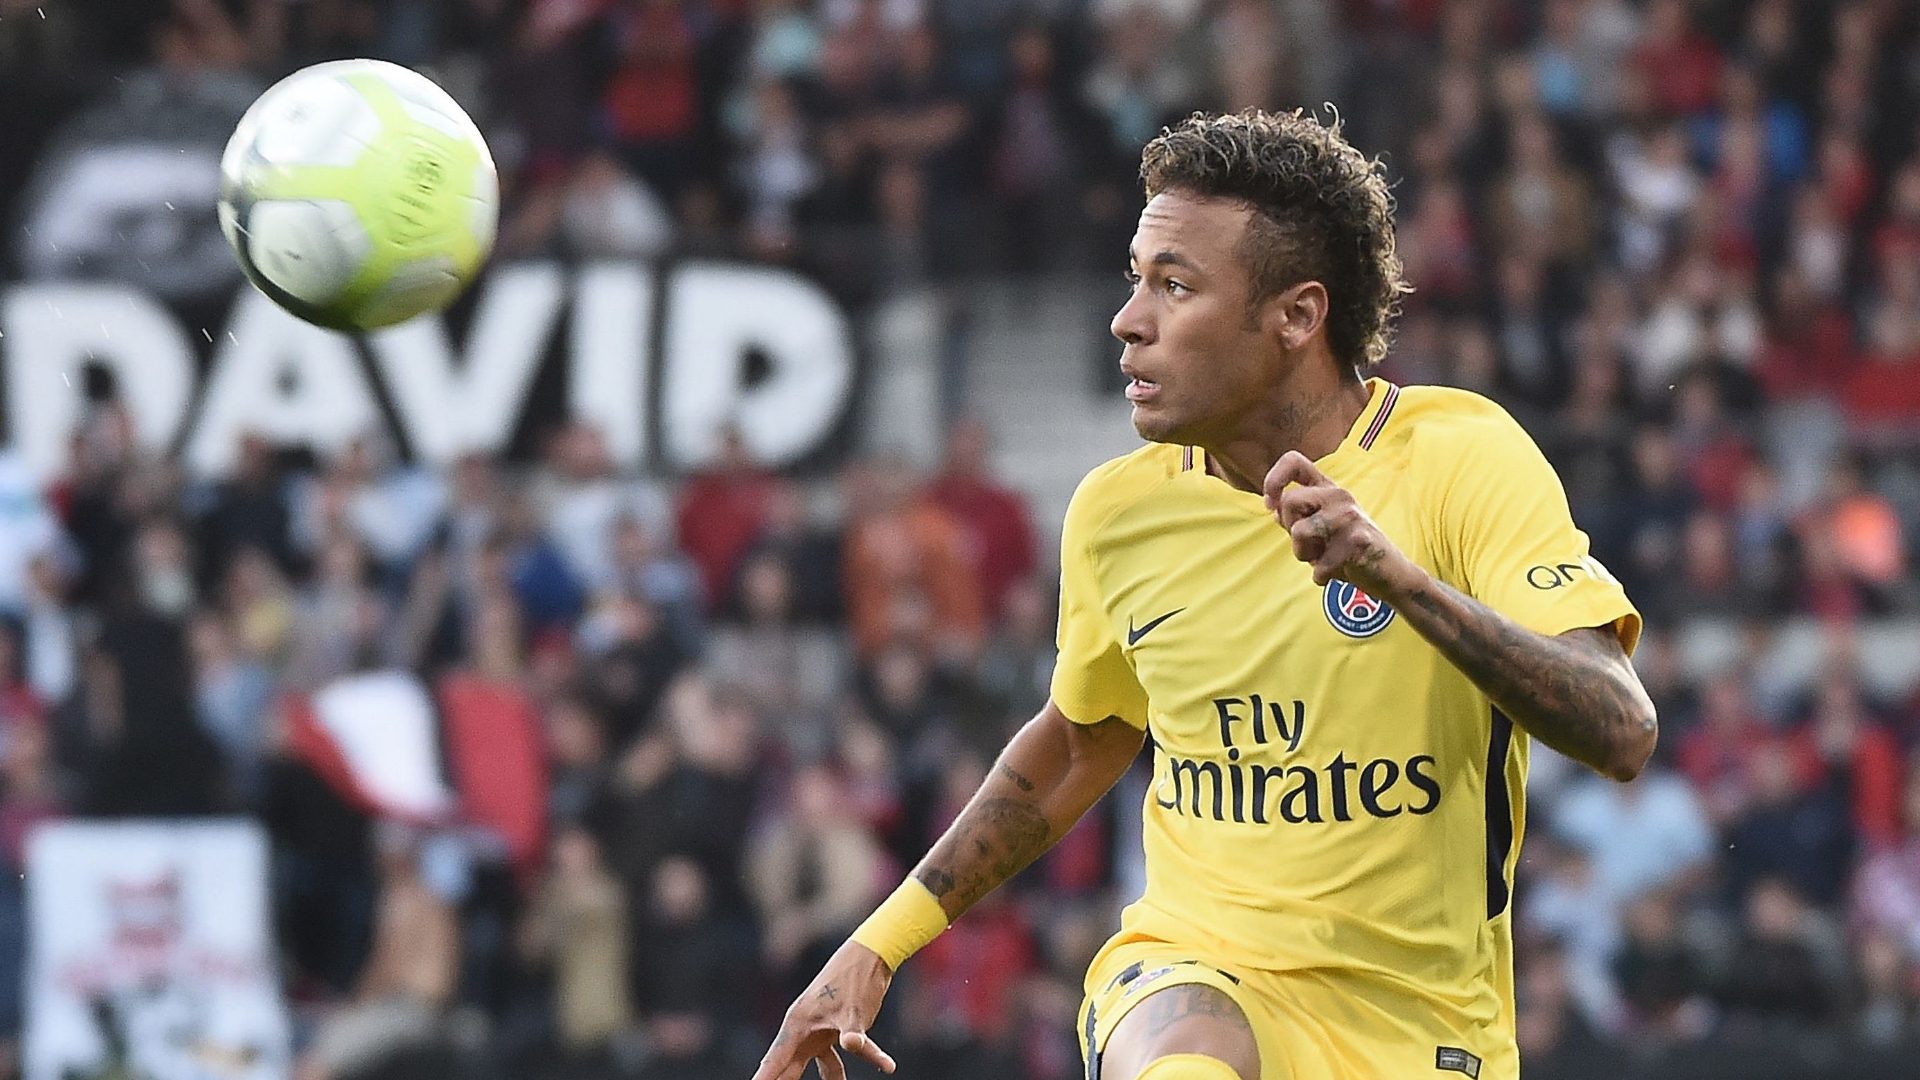 Neymar feels 'more alive' after PSG debut